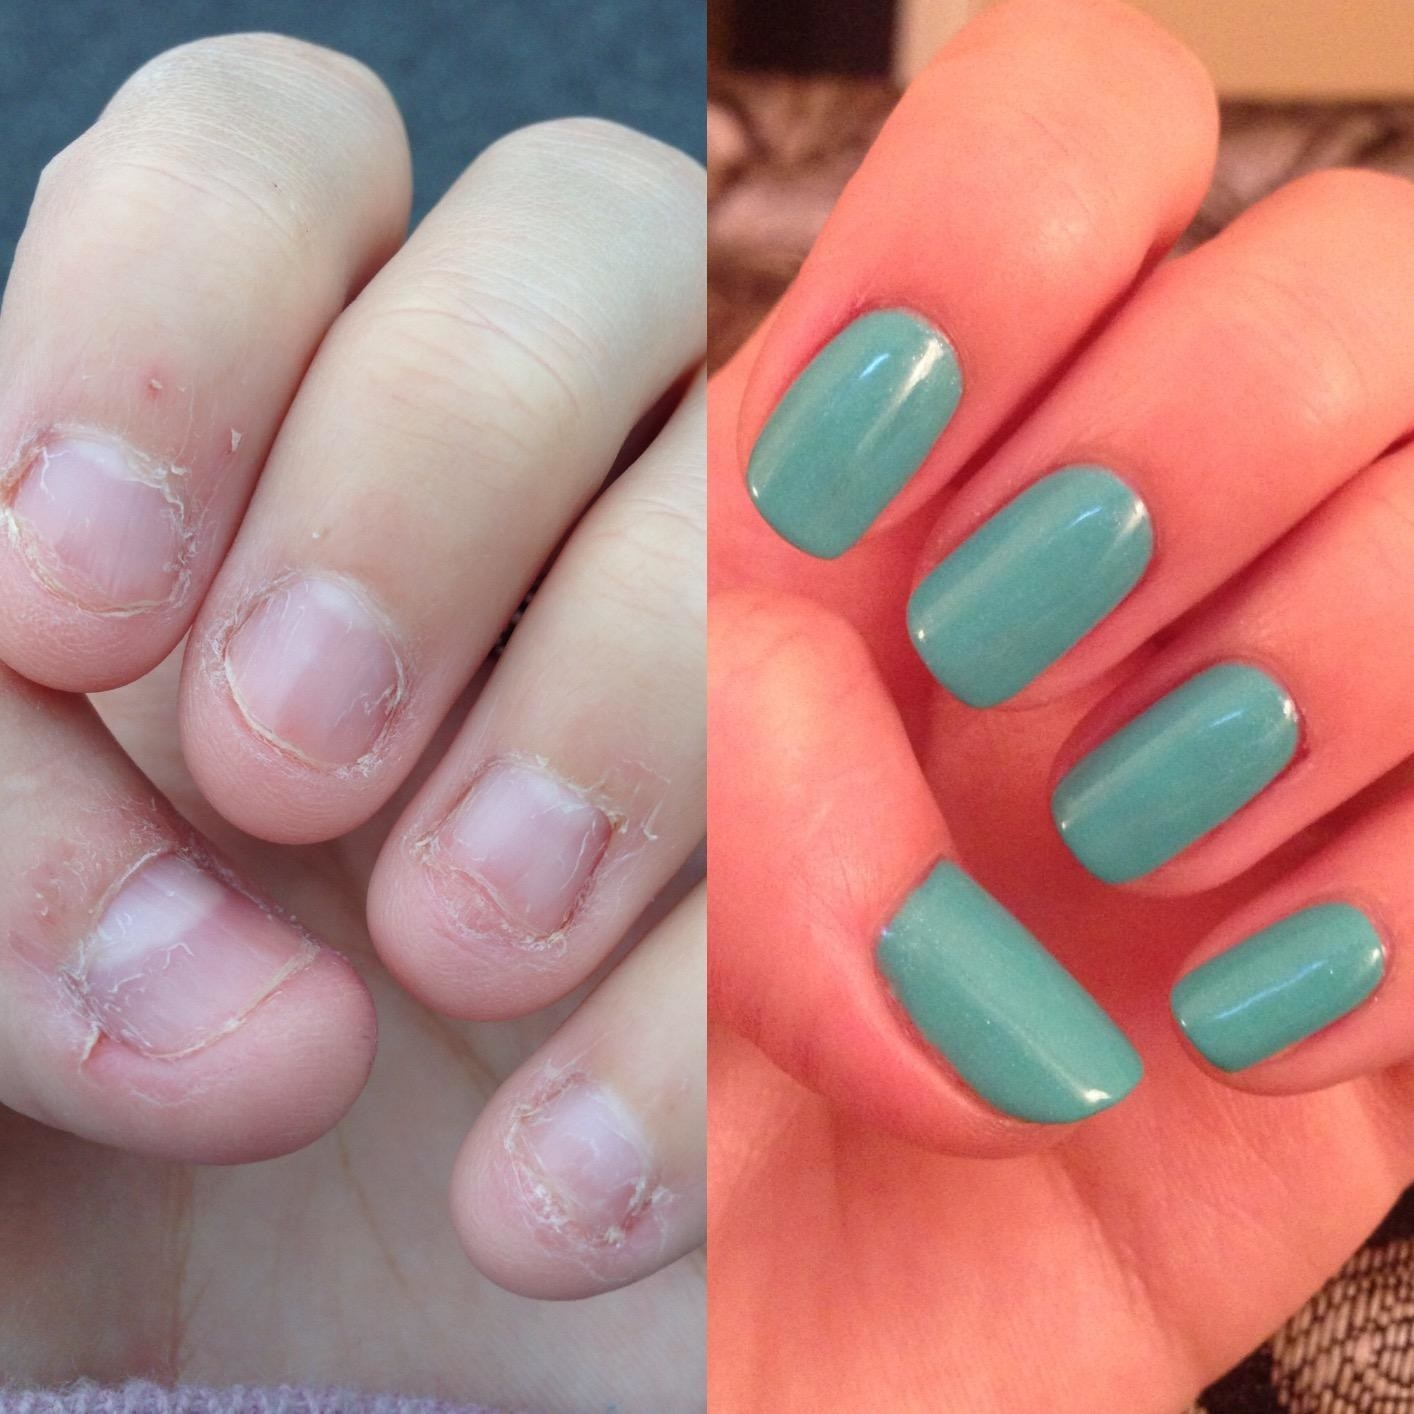 Reviewer before and after shot of nails using product